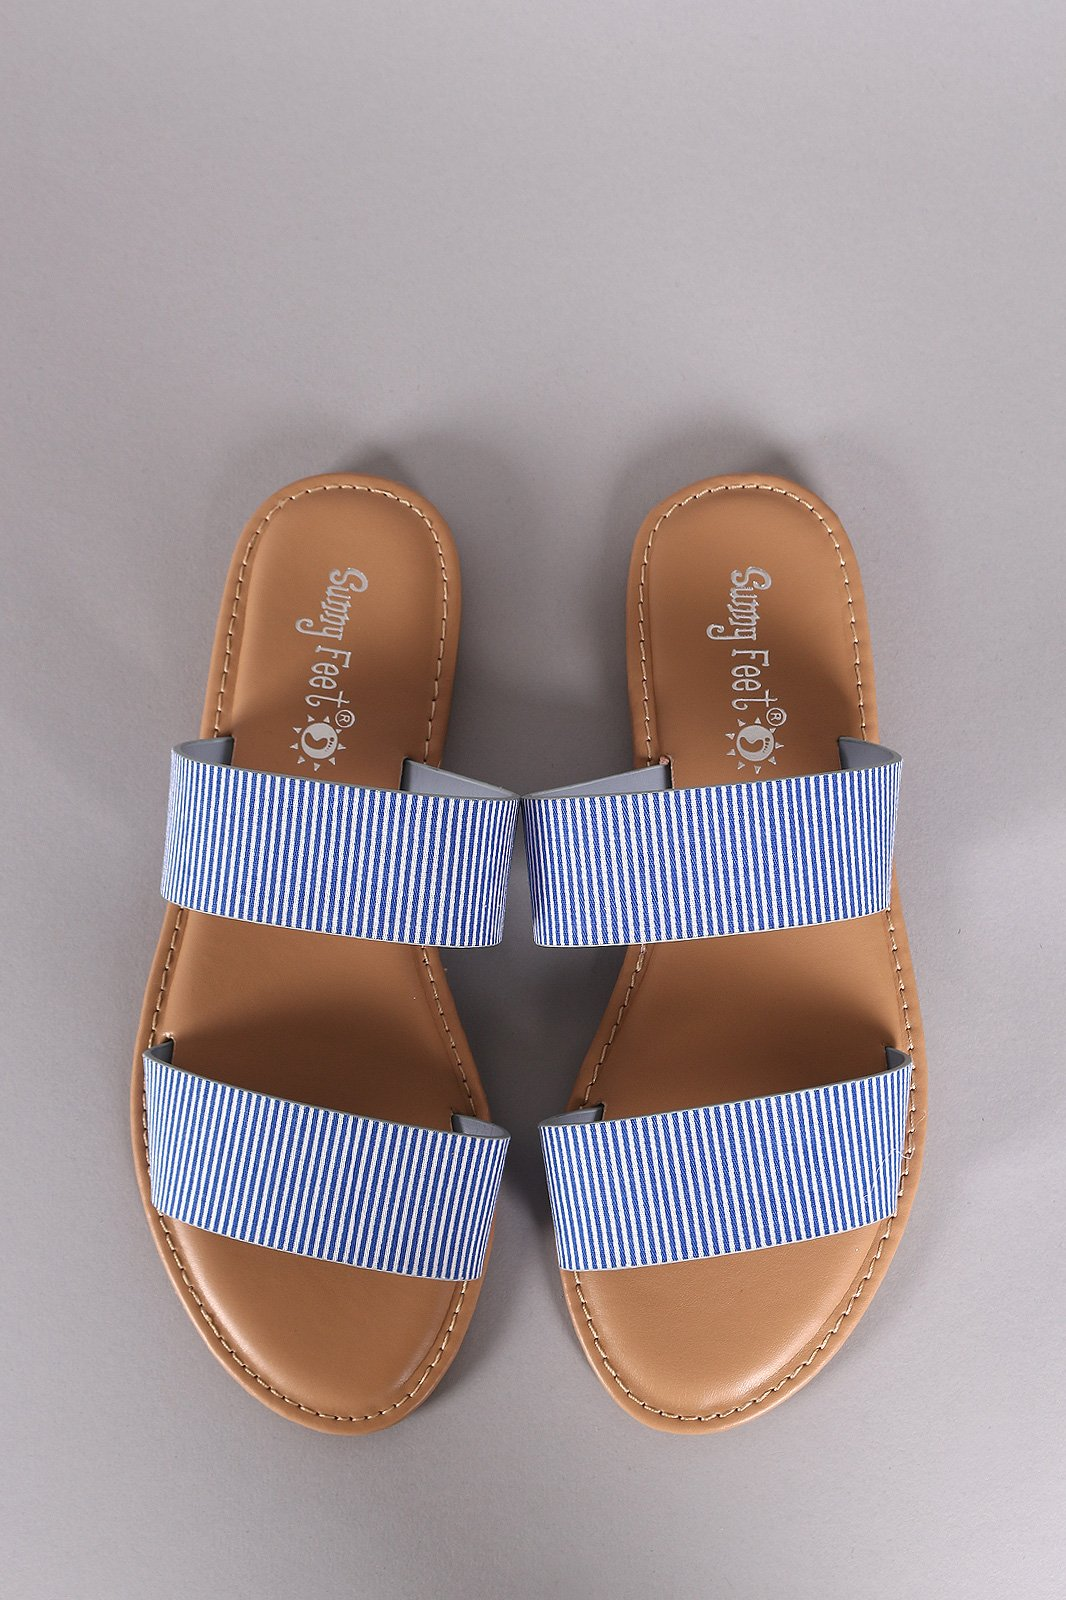 cfd12b5ca5fa Sunny Feet Printed Double Band Slide Flat Sandals in 2019